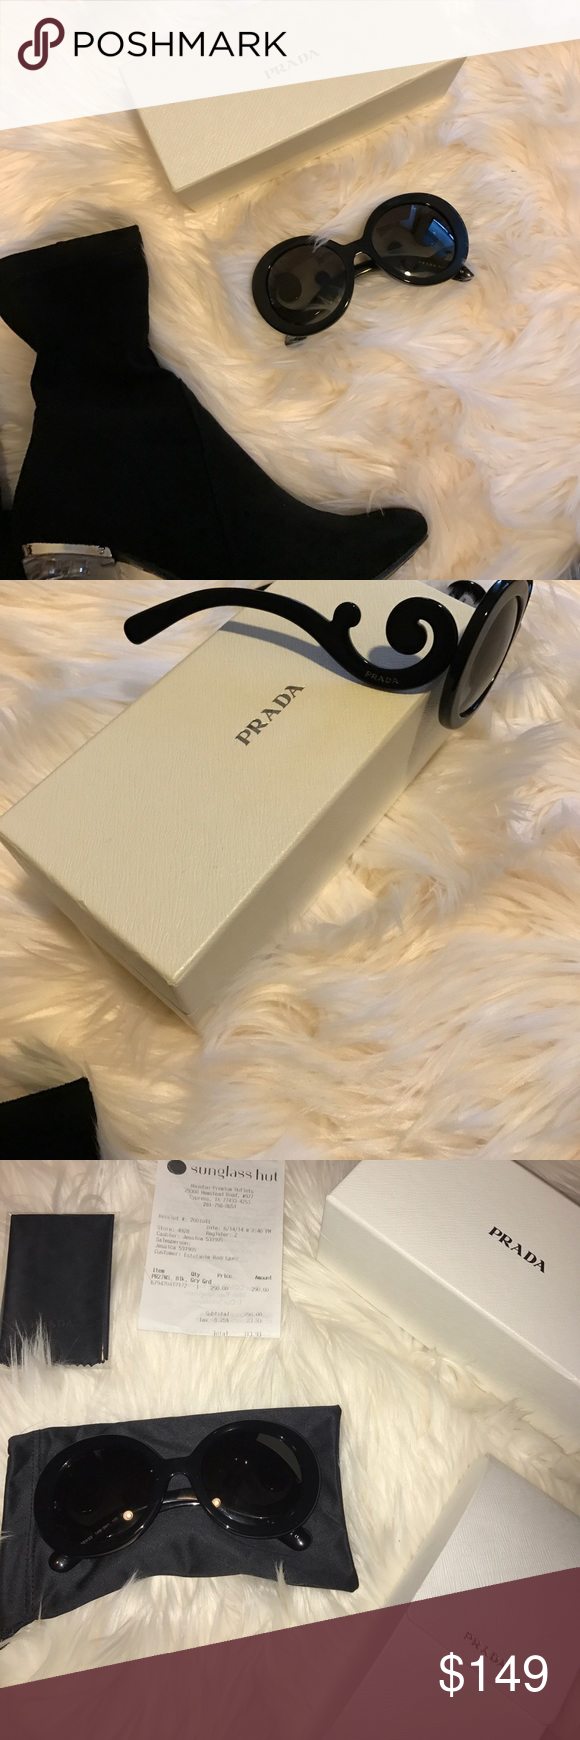 Prada Sunglasses Oversized black sunglasses, authentic Prada with receipt from sunglass hut and boxes. Well taken care of, didn't get to wear much as they were a bit too big for my face. No scratches, mint condition. Prada Accessories Sunglasses